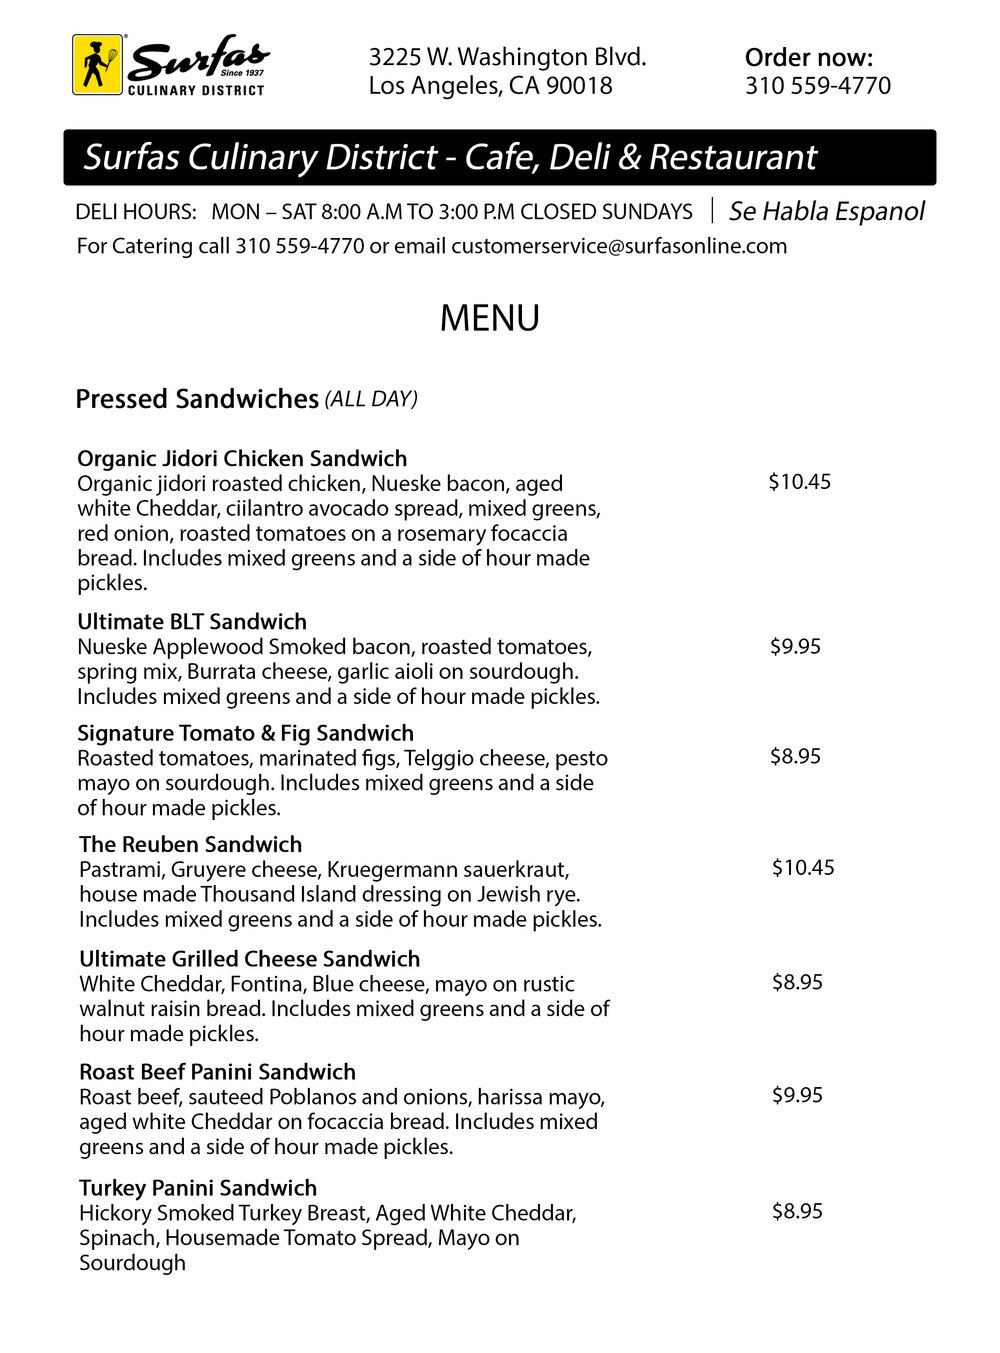 Surfas Culinary District - Cafe - Pressed Sandwiches.jpg